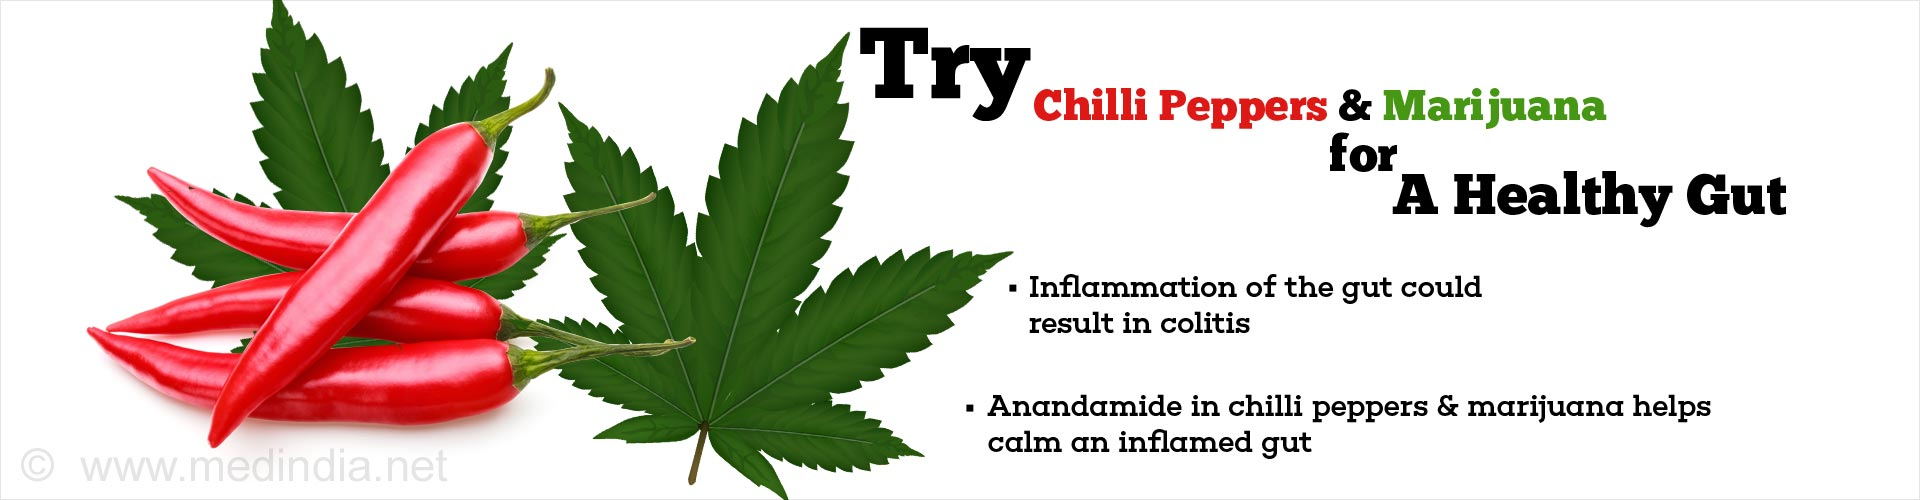 ou Chill Out an Inflamed Gut With Chilli Peppers and Marijuana